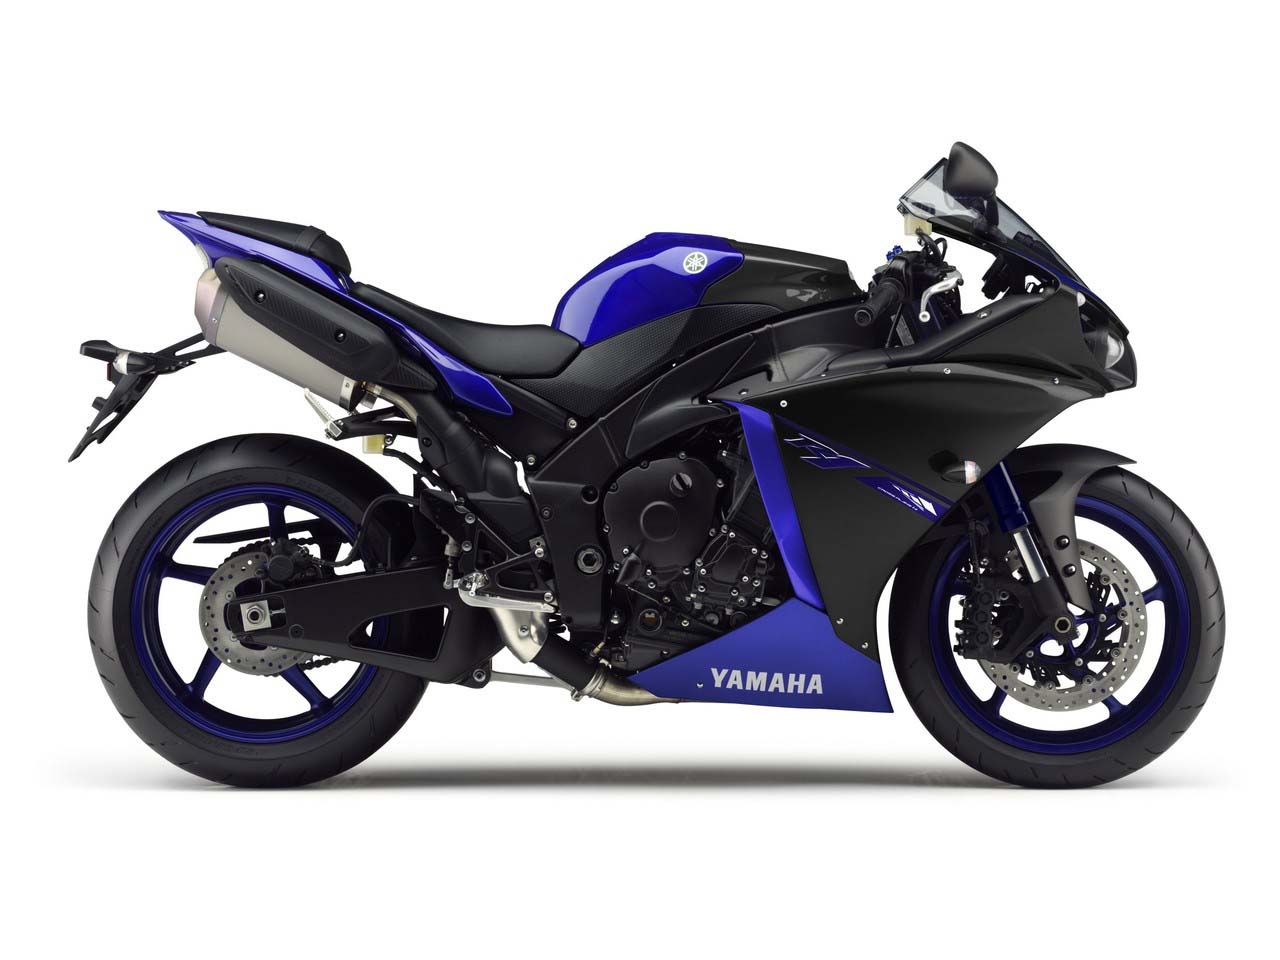 yamaha r1 blue bike - photo #18